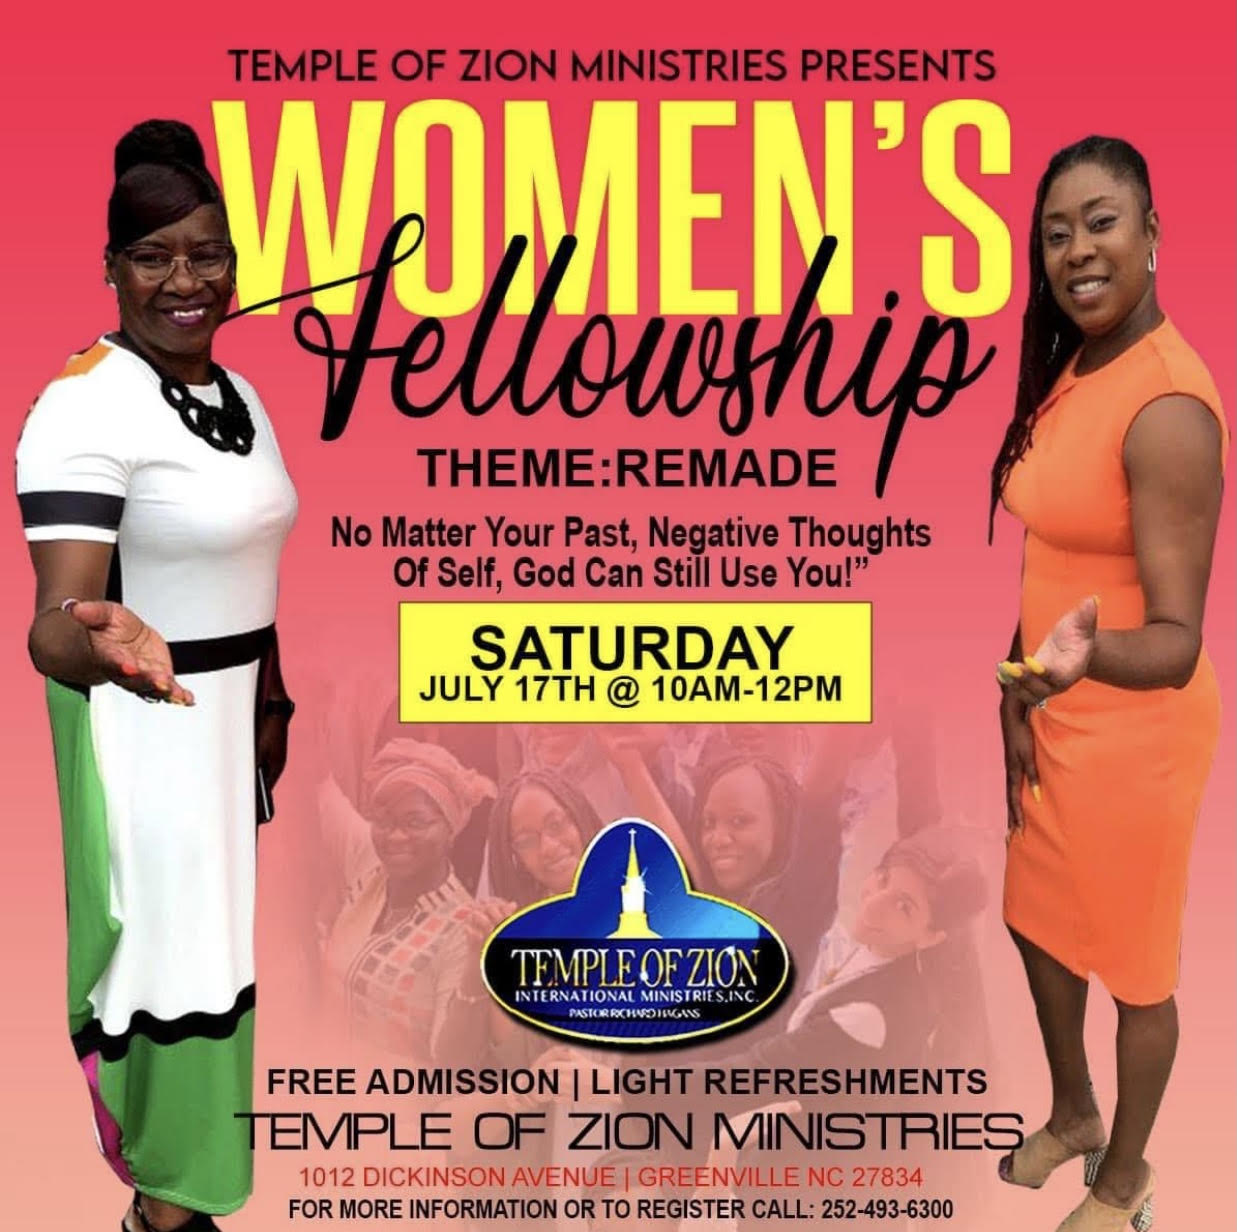 Temple of Zion Ministries in Greenville Presents: Women's Fellowship